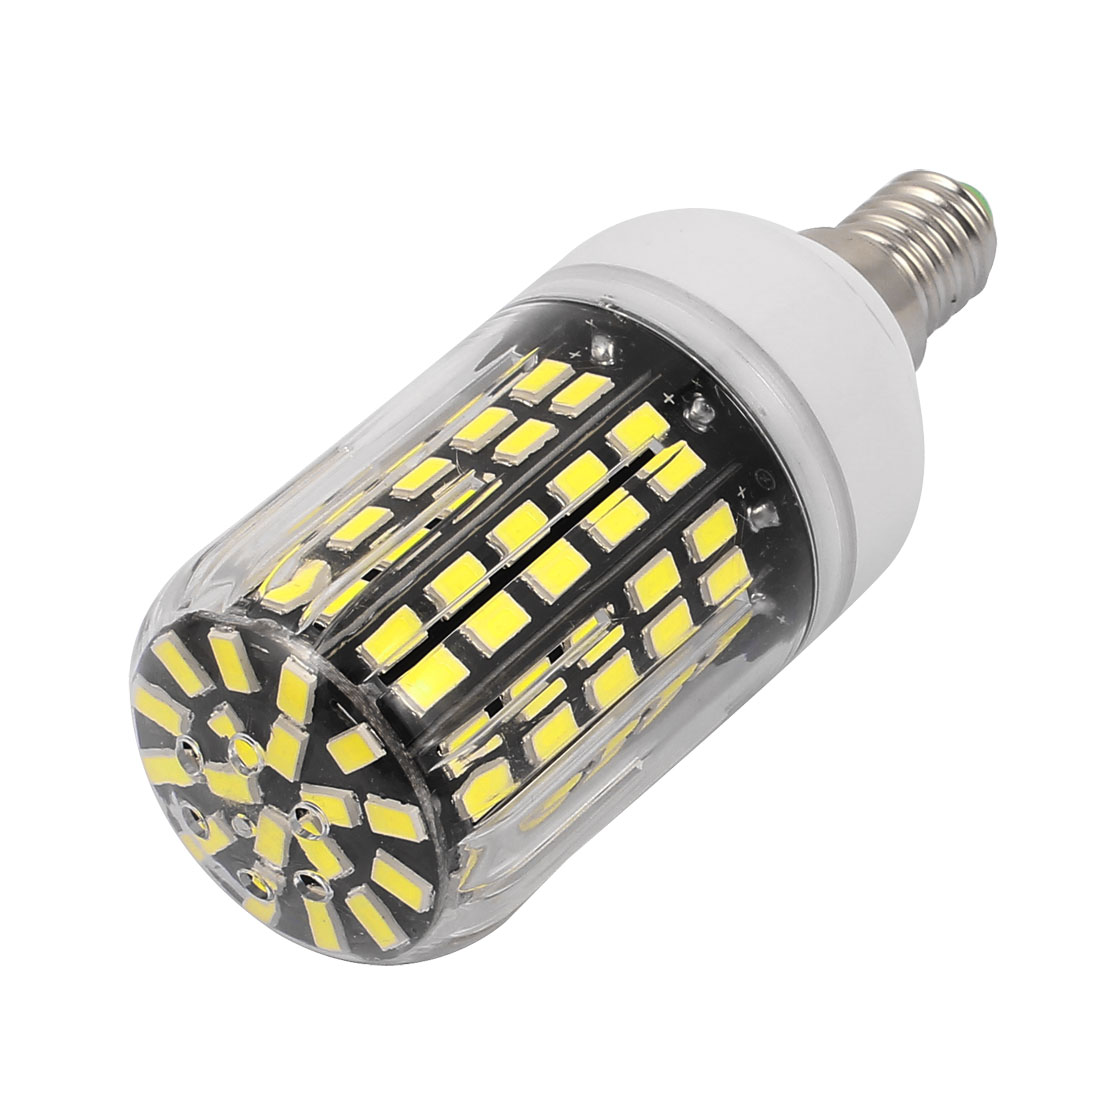 AC220V 10W 108 x 5733SMD E14 LED Corn Bulb Light Lamp Energy Saving Pure White